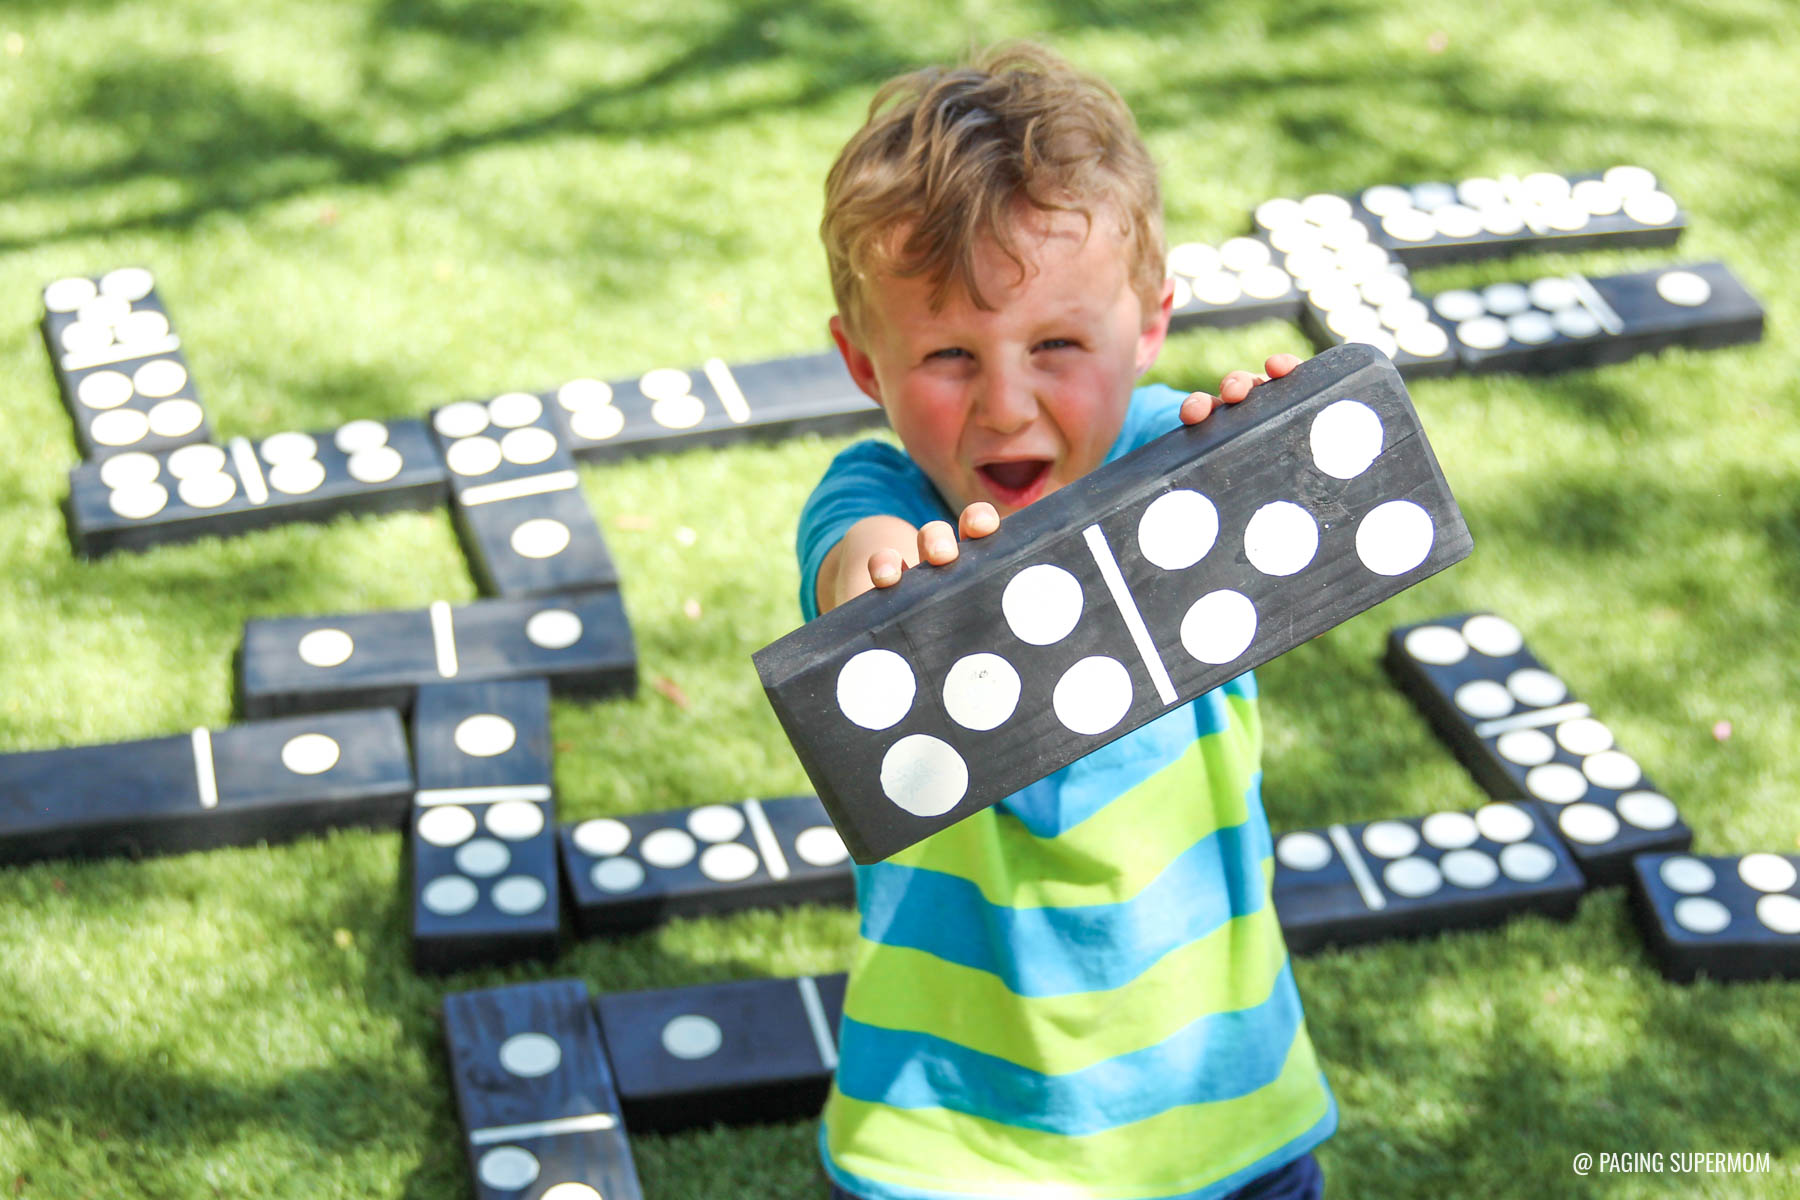 Giant Yard Dominoes - DIY Backyard Games plans from @HomeDepot via @PagingSupermom